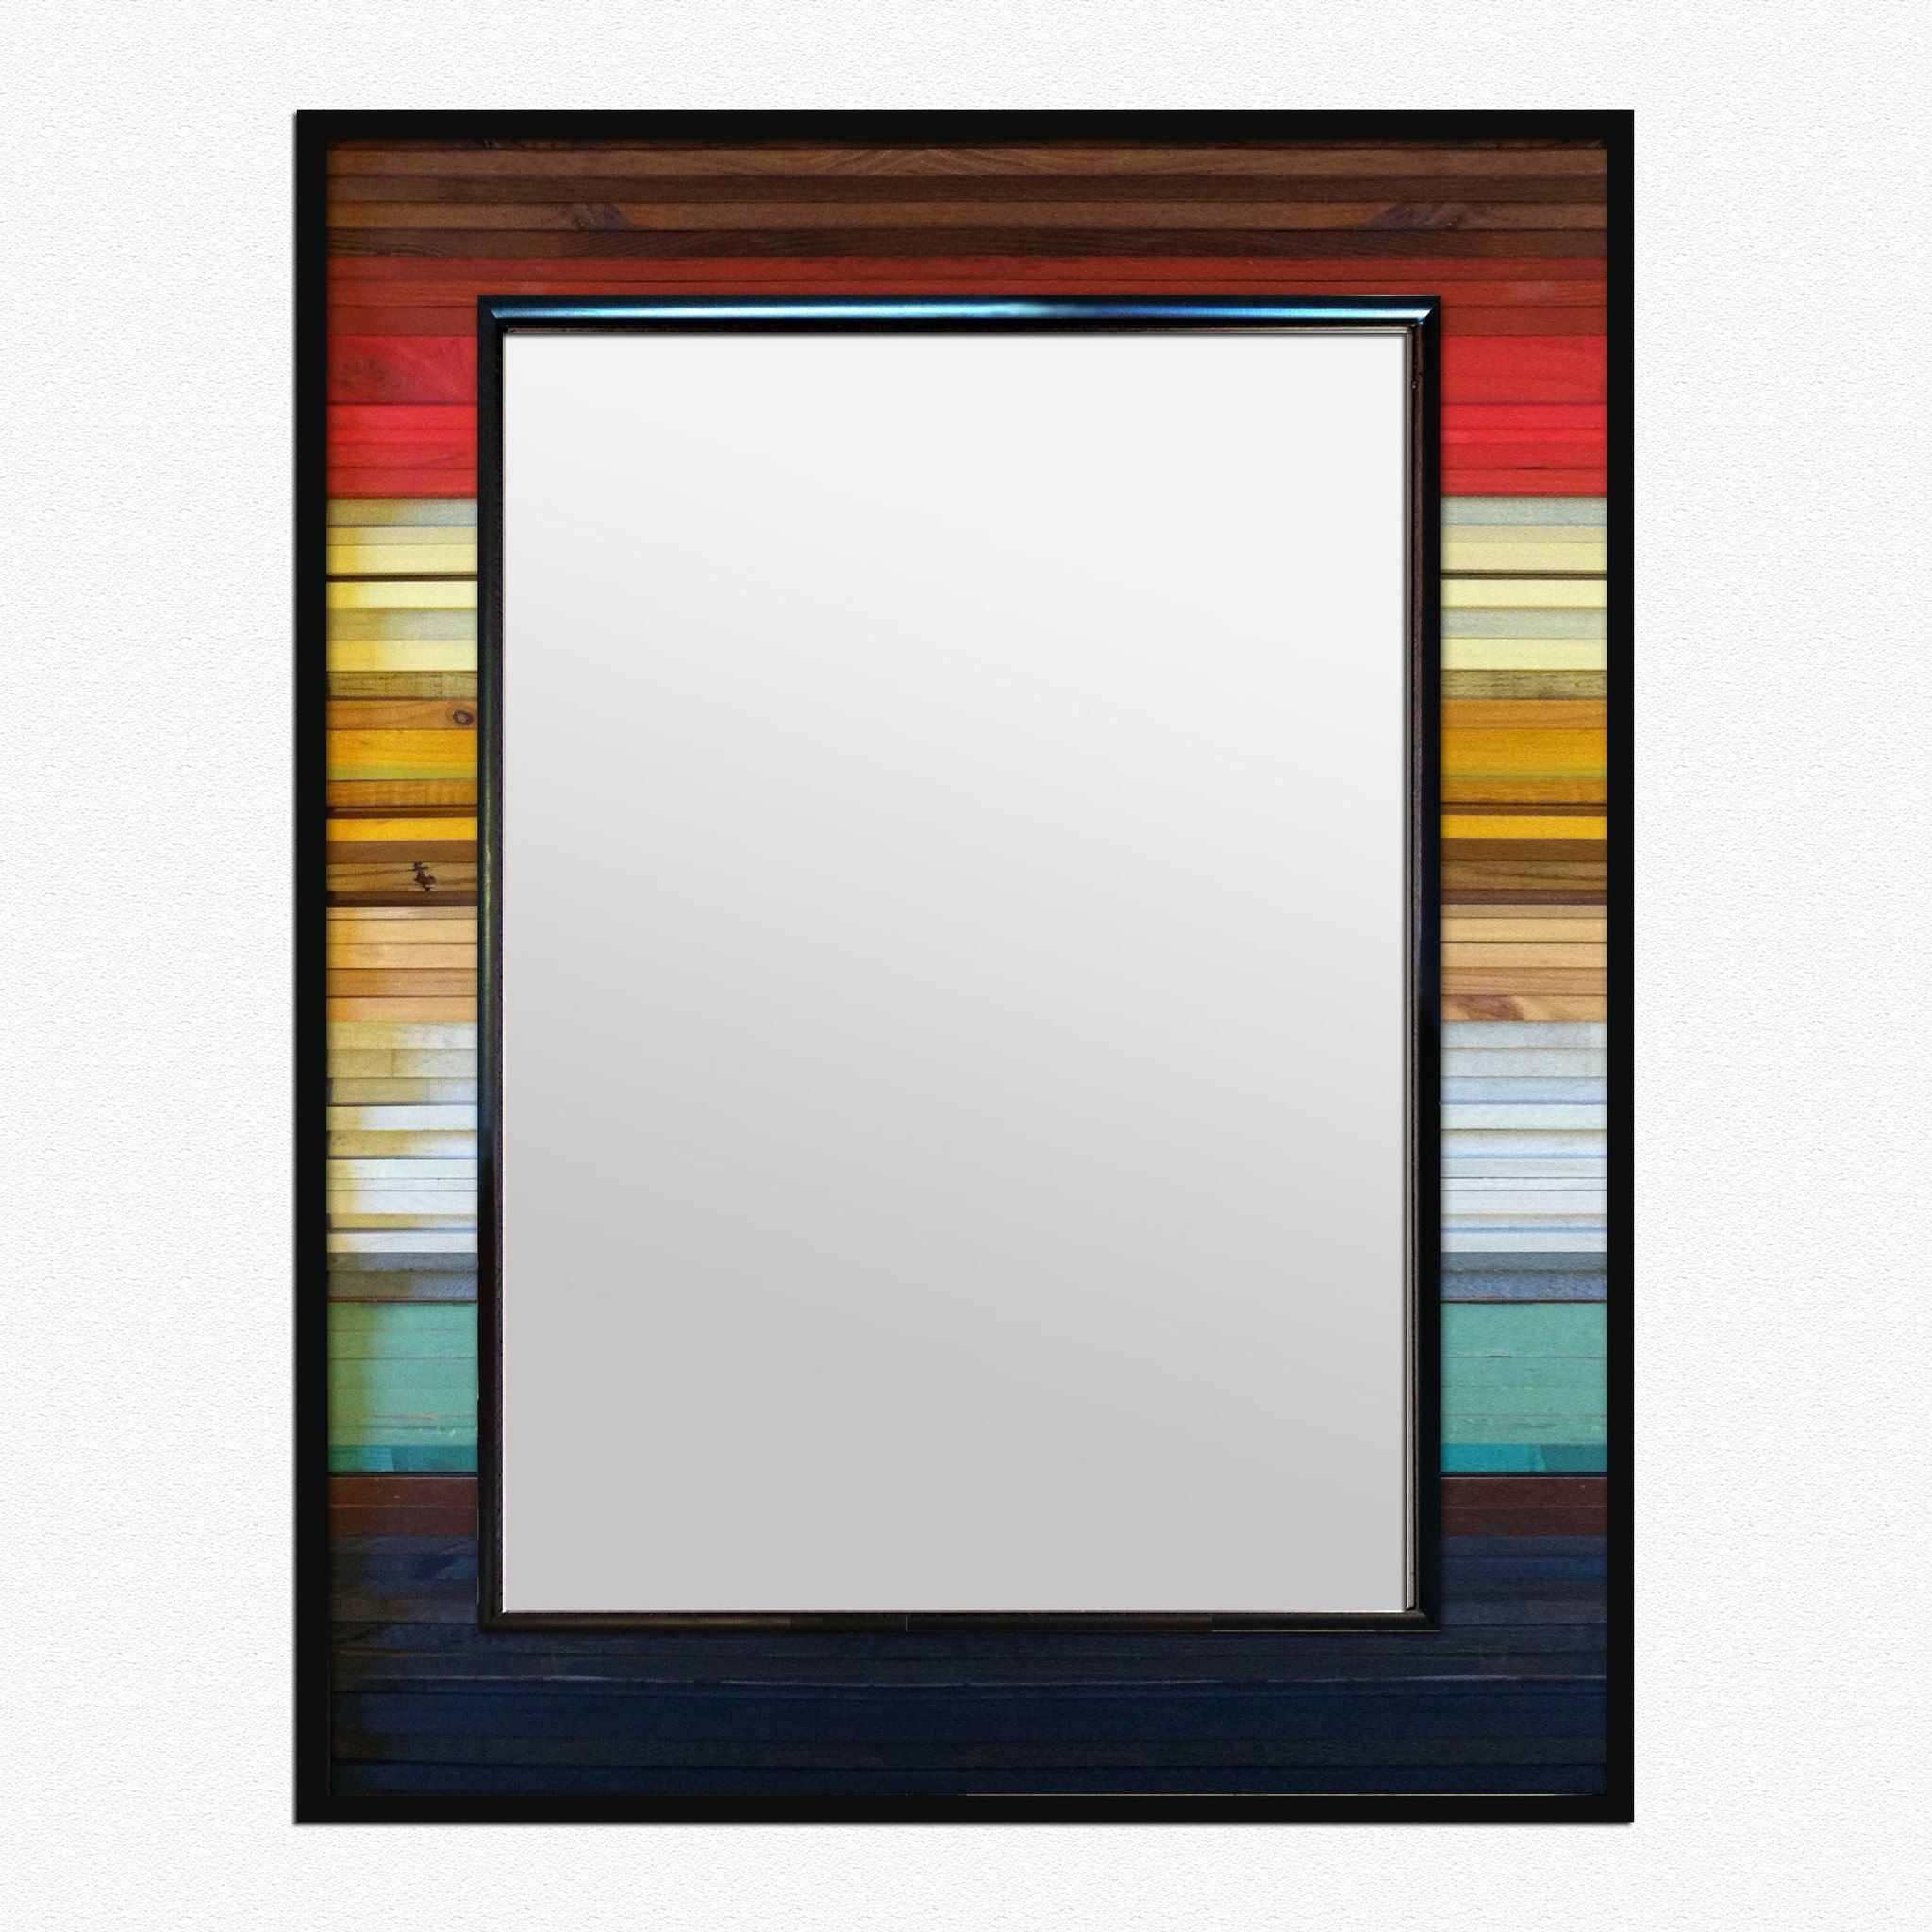 Upcycled Wall Art Gradient Reflection Wood Wall Art Wall Mirror Wood Wall Art